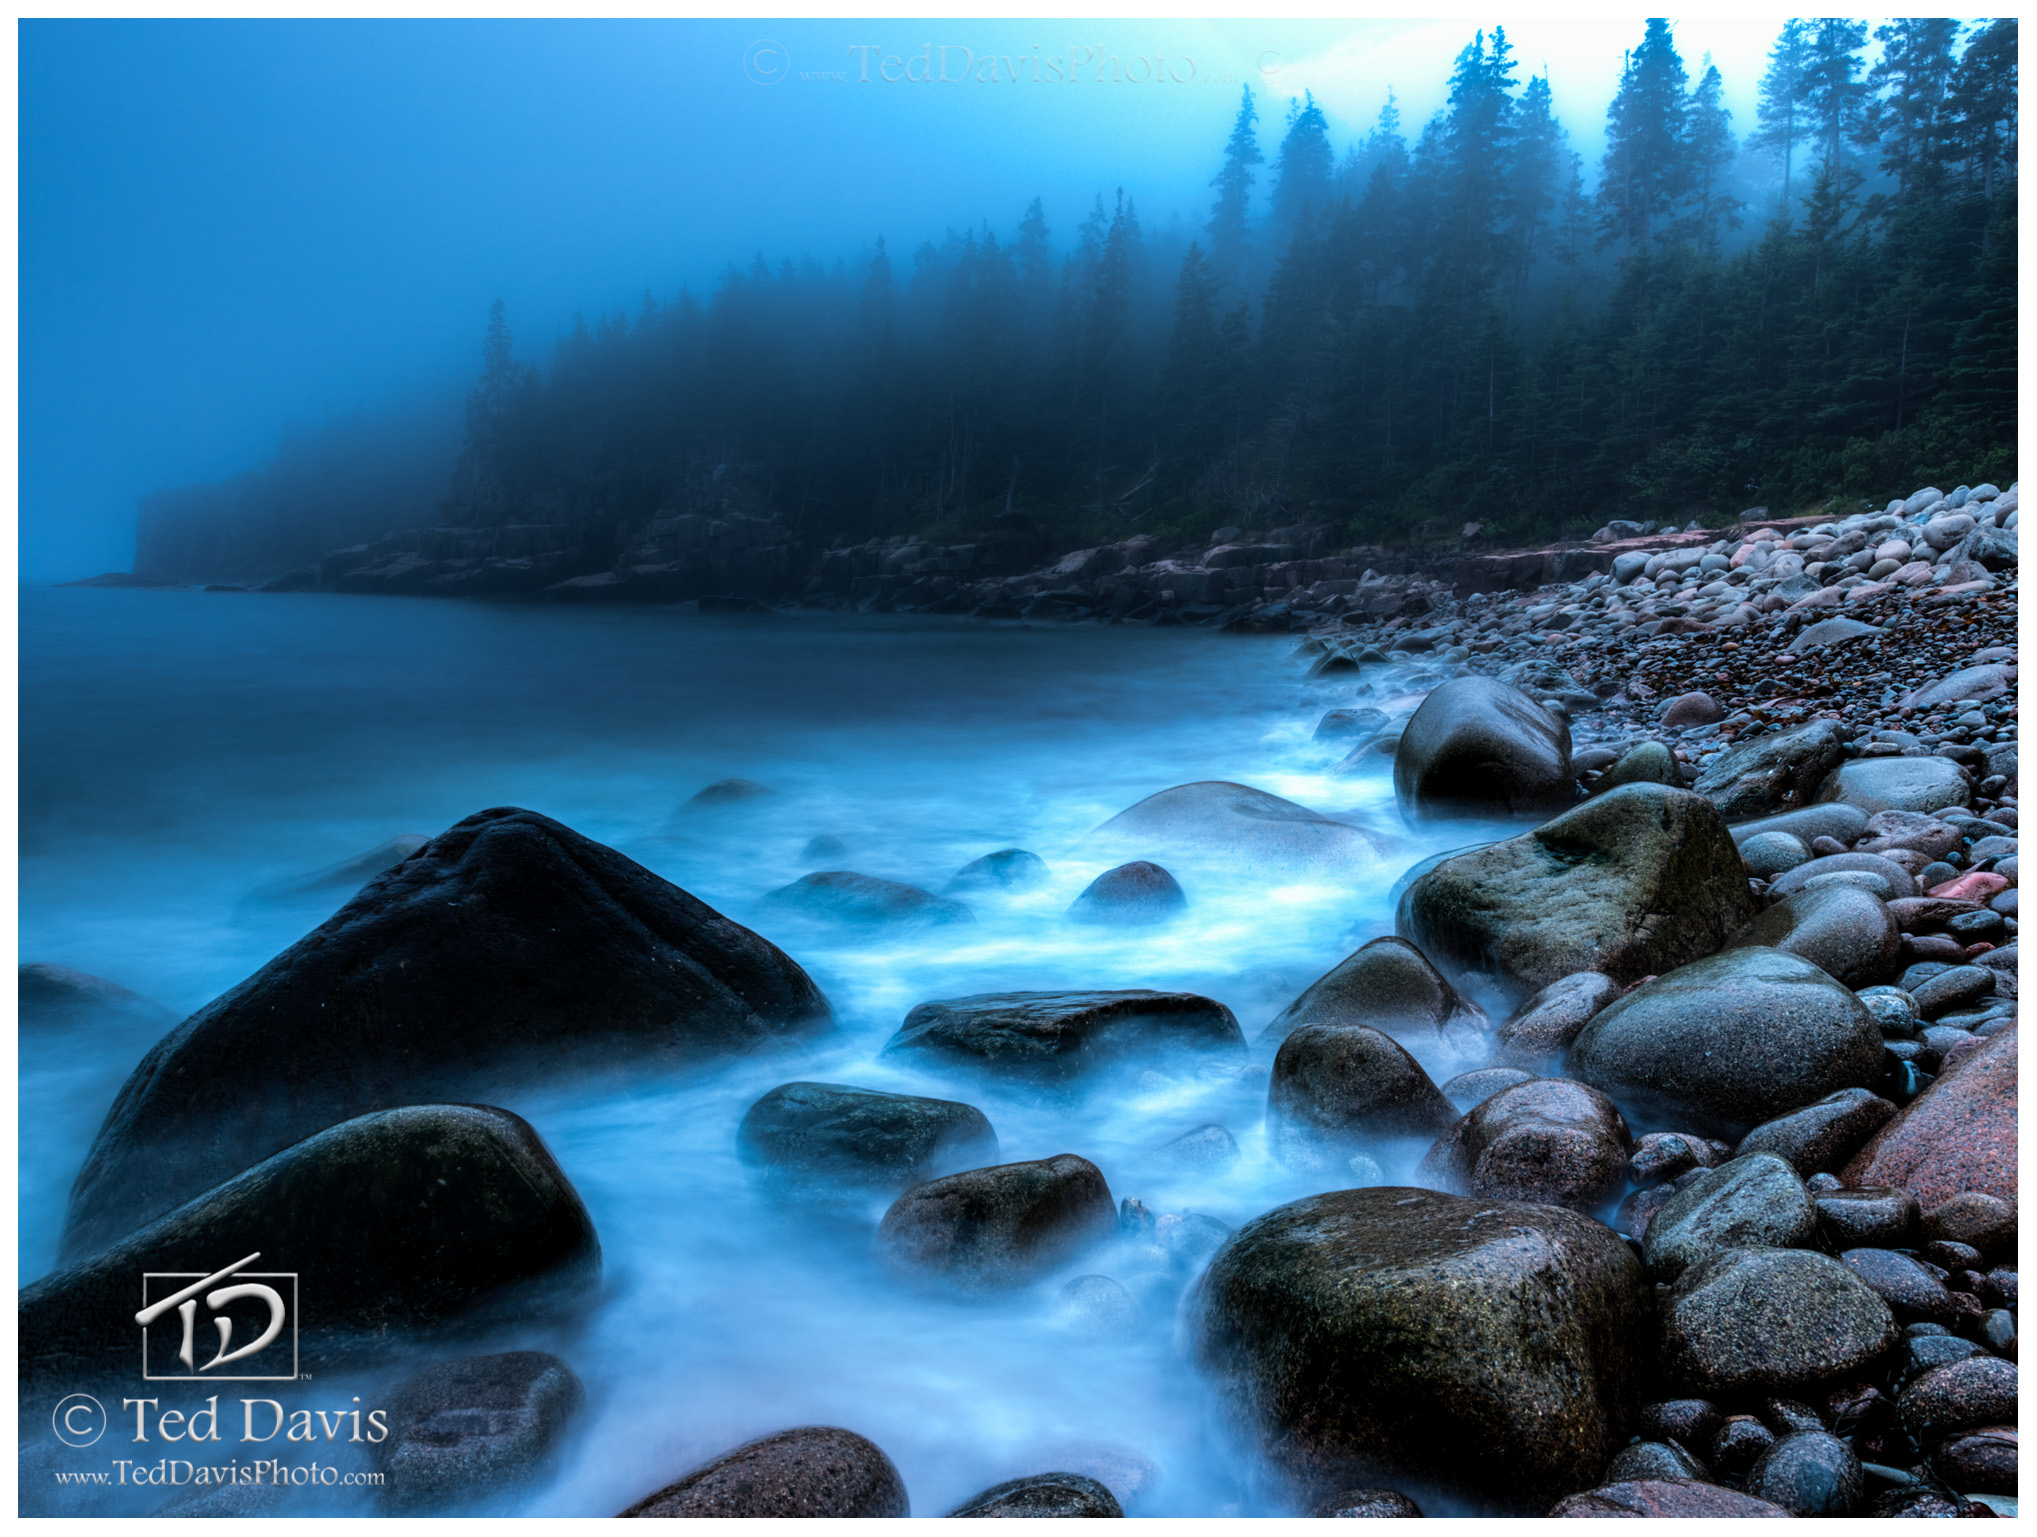 Sea, Fog, Forest, Rocks, Mist, Maine, New England, photo